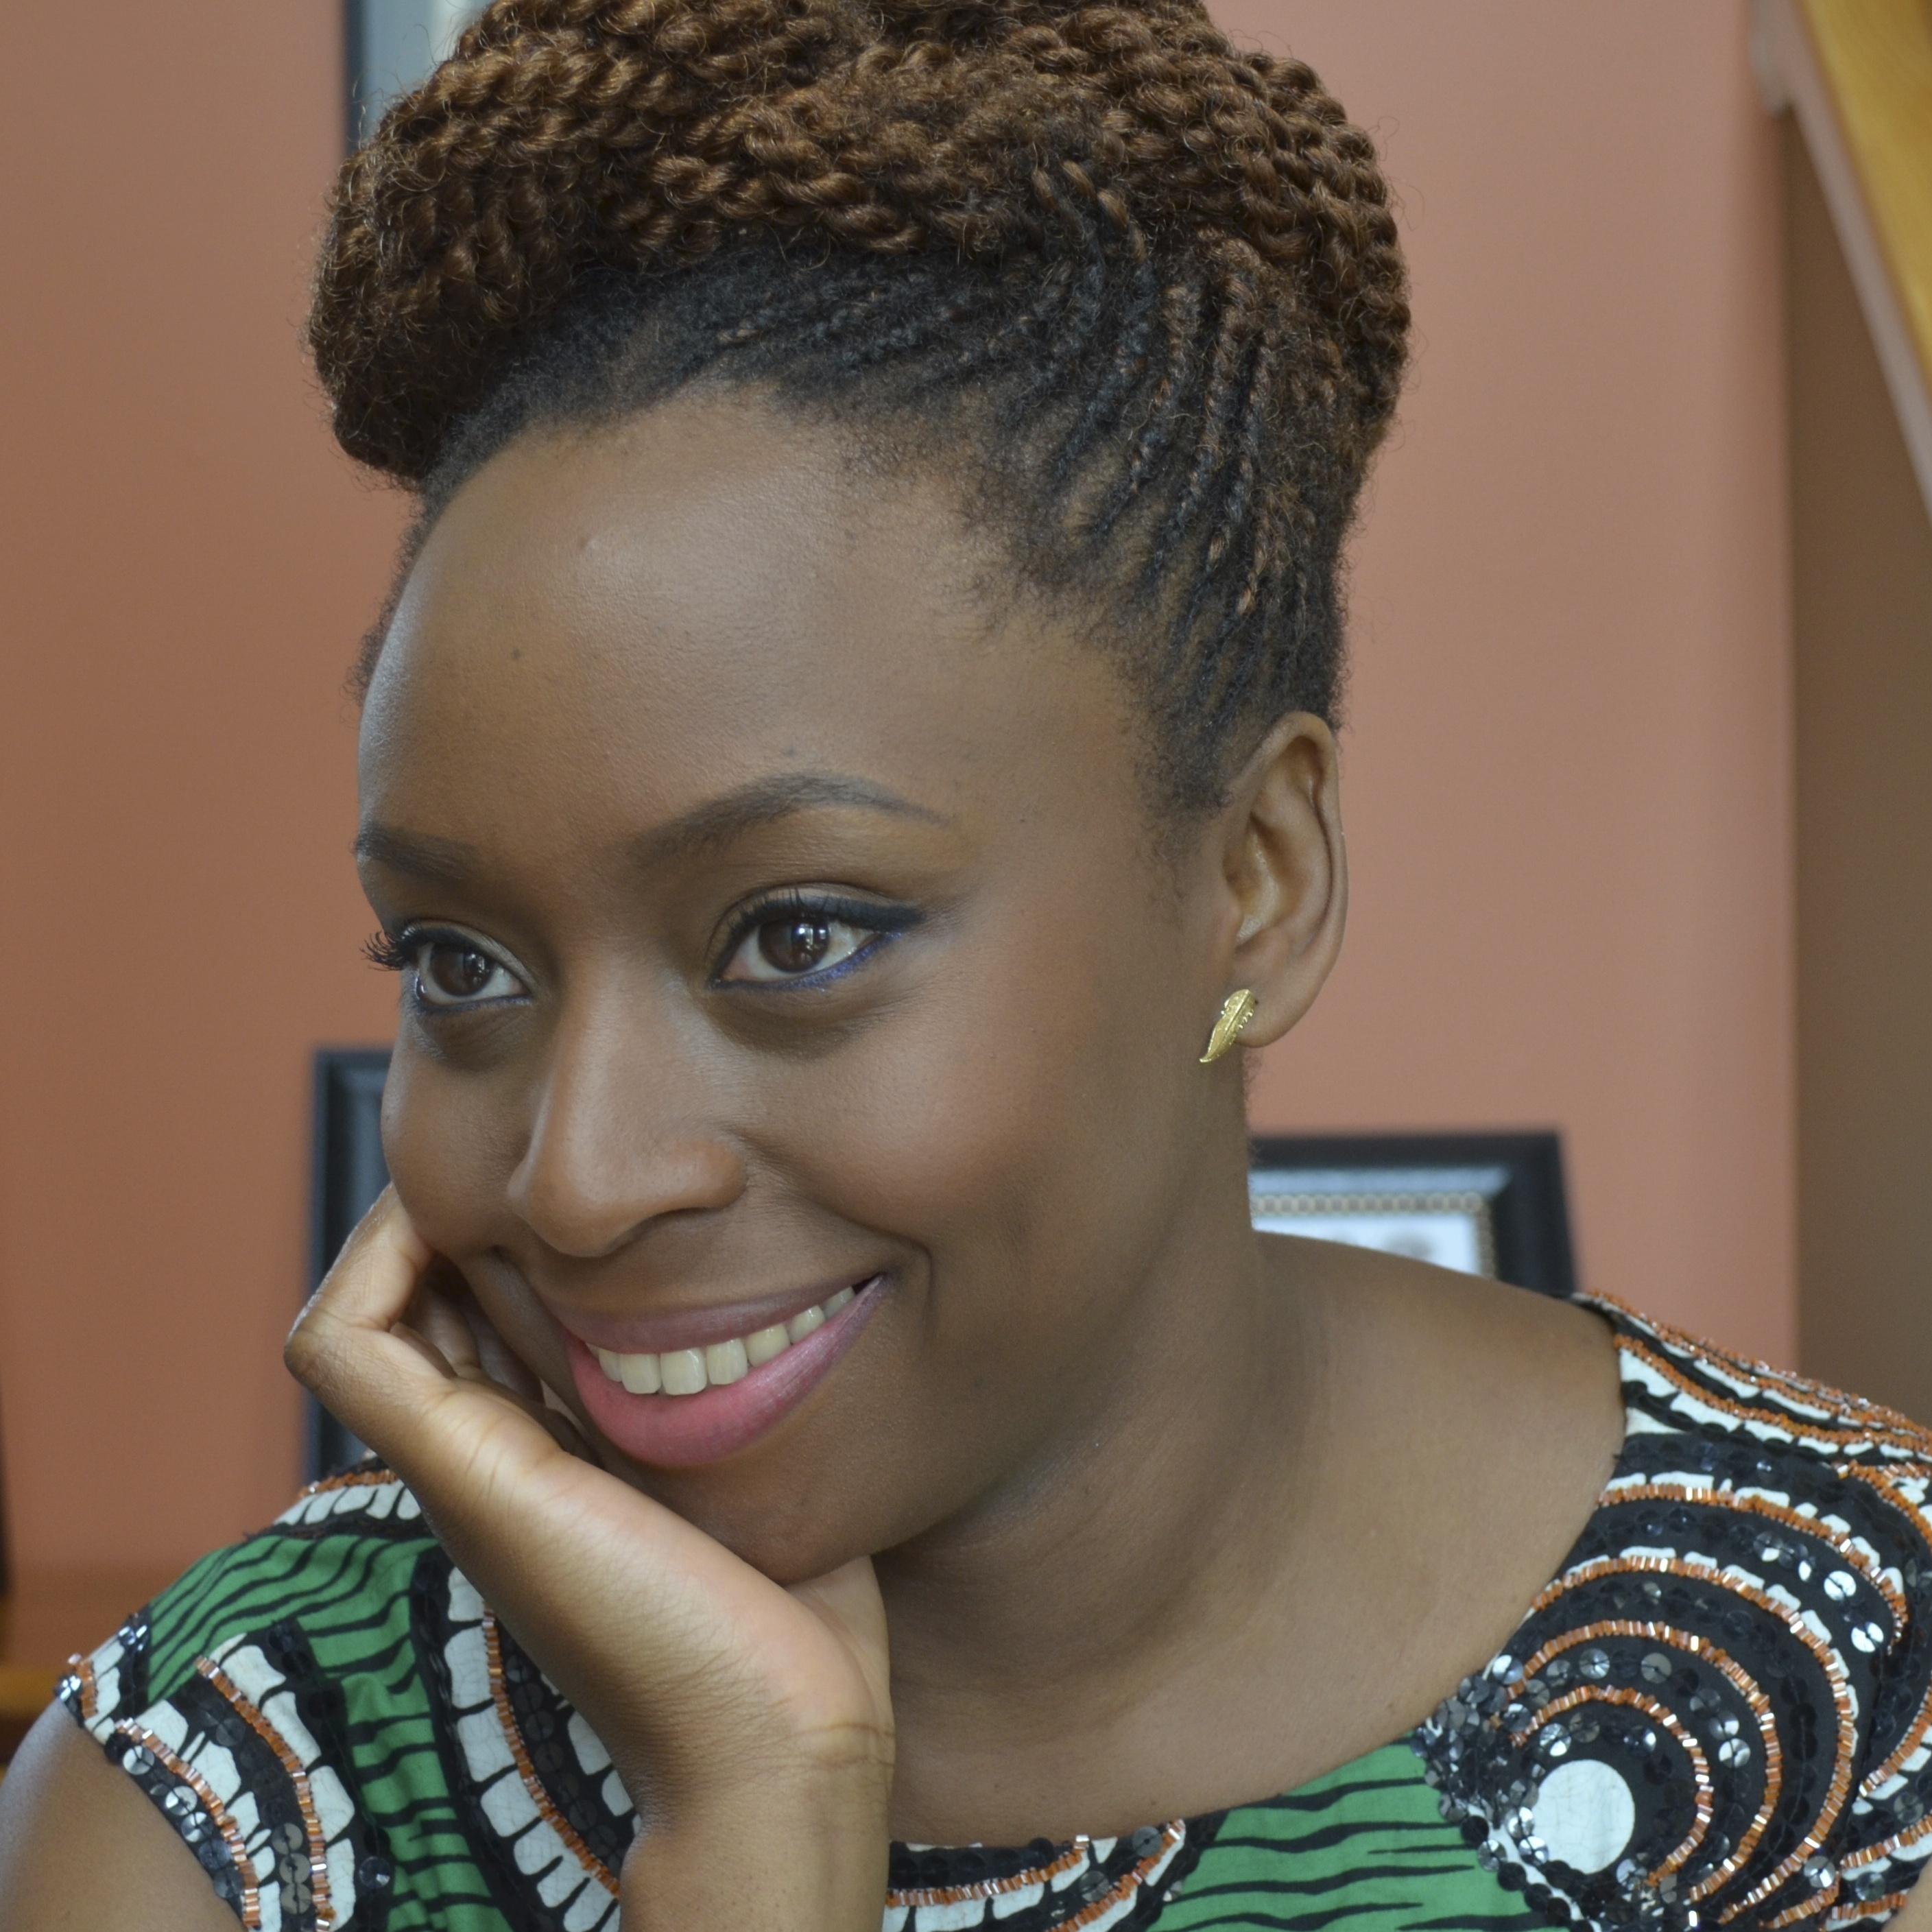 Chimamanda Ngozi Adichie is also the author of Purple Hibiscus and Half of a Yellow Sun.